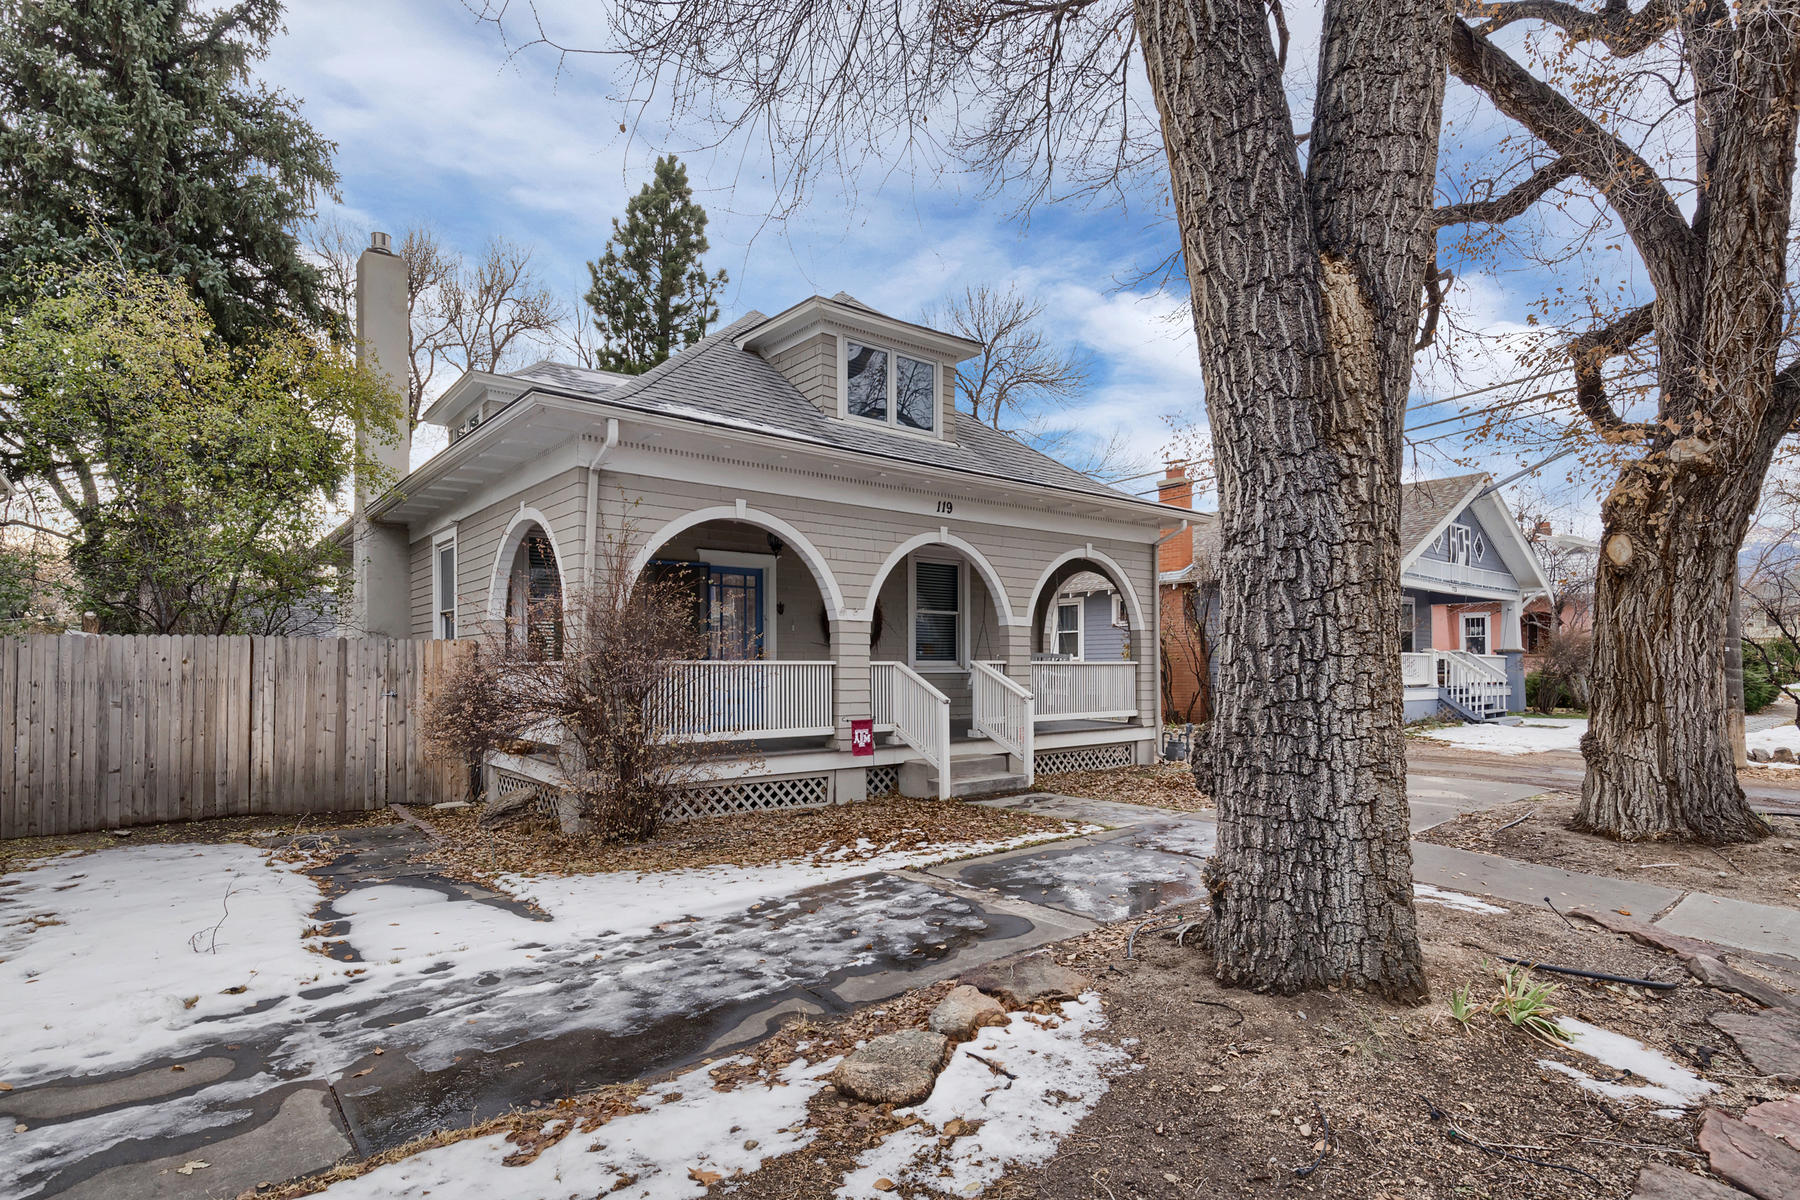 Property for Active at Turn of the Century charm + modern updating in a coveted location! 119 E Espanola St Colorado Springs, Colorado 80907 United States